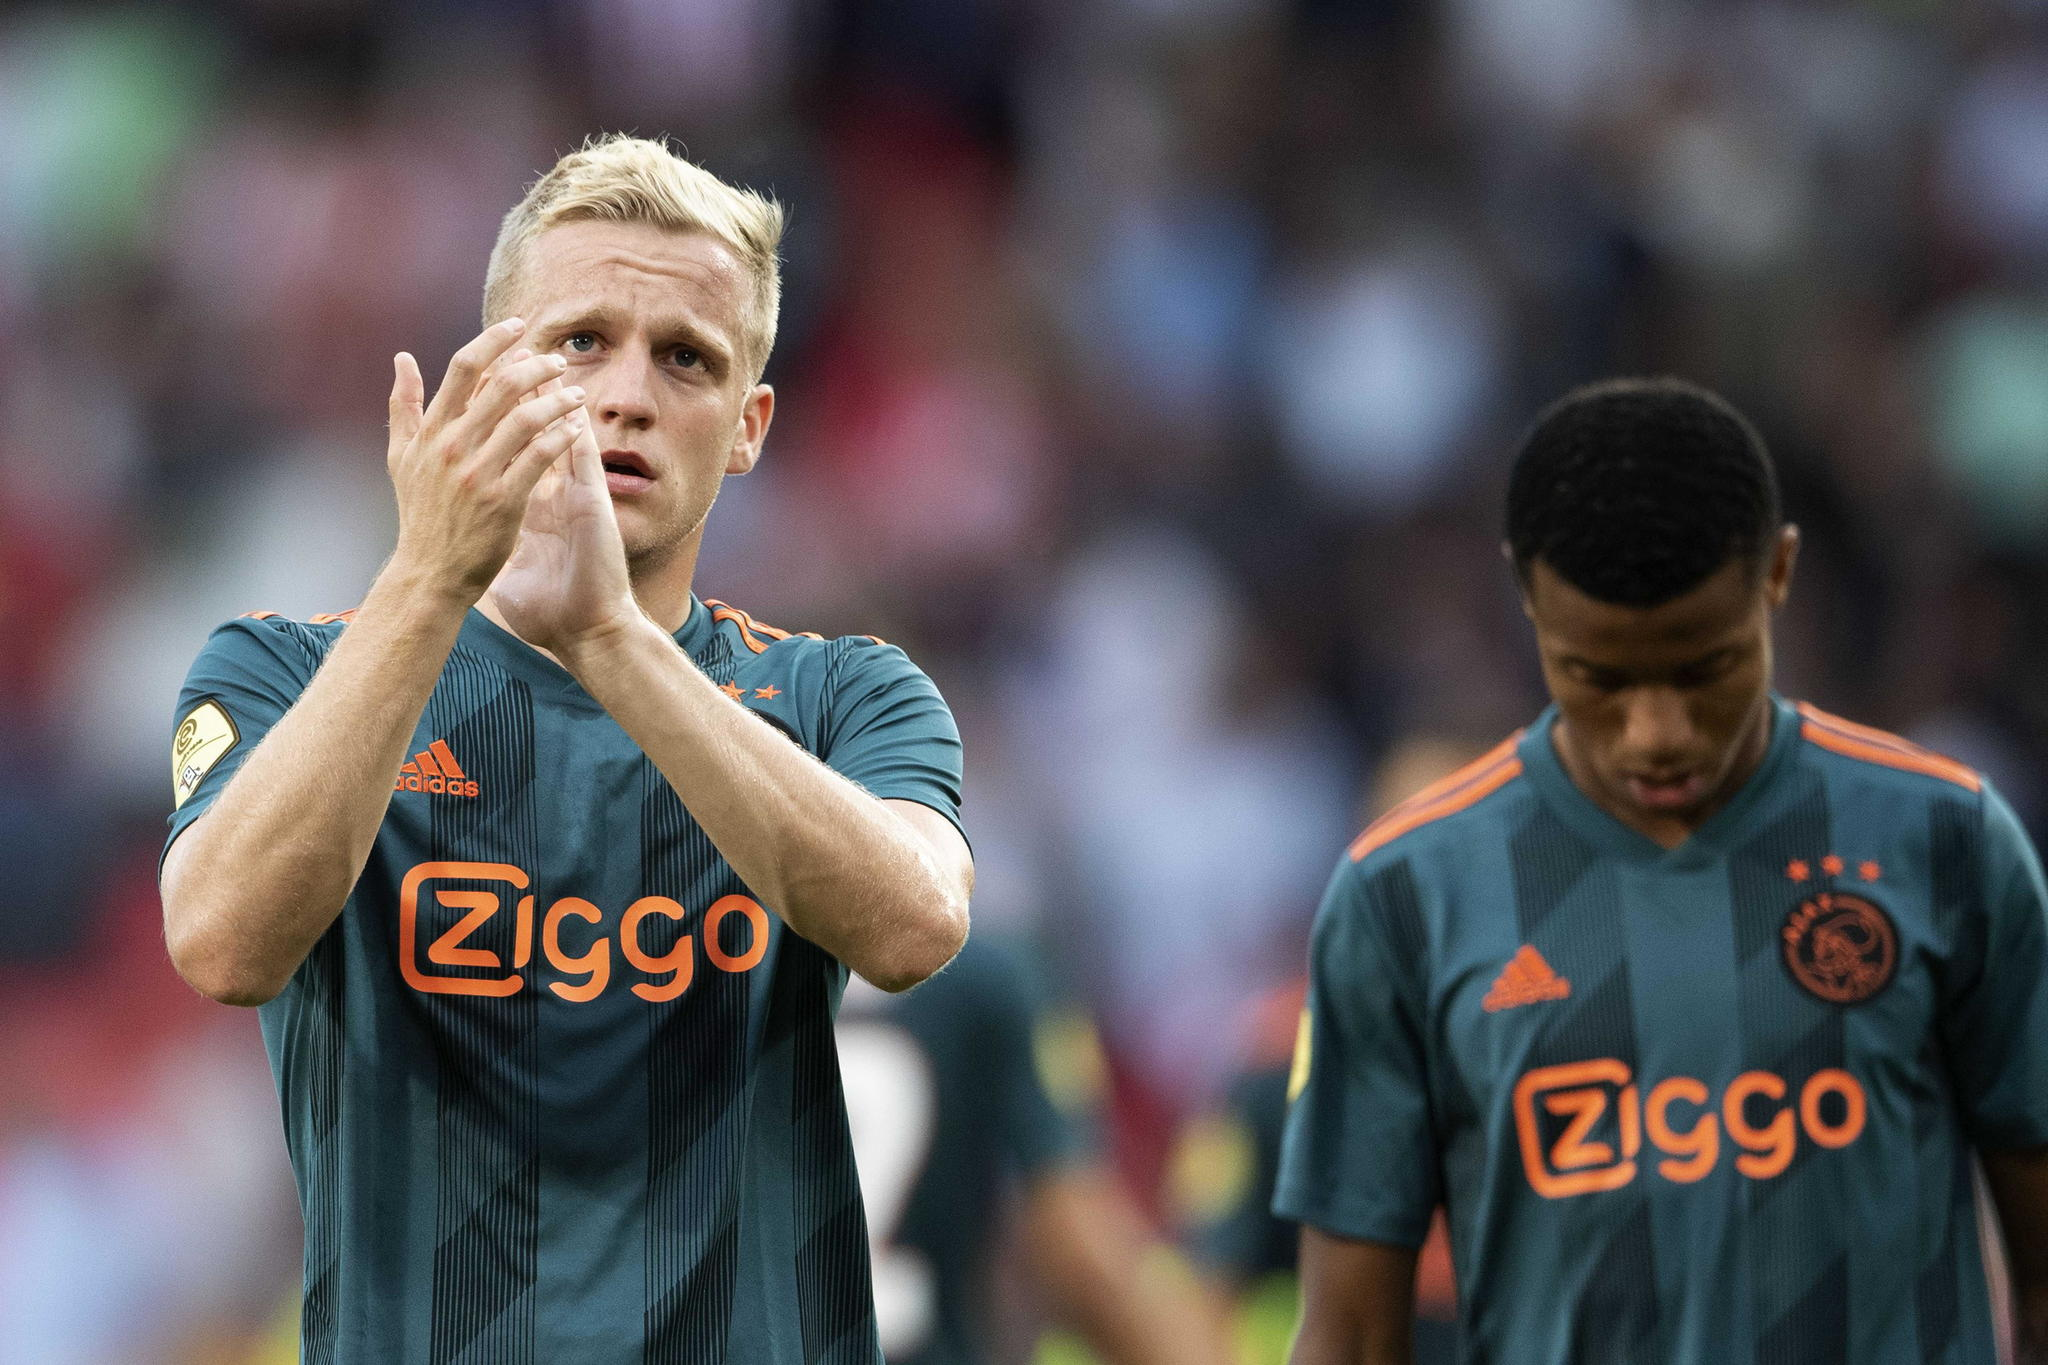 Eindhoven (Netherlands), 22/09/2019.- Donny <HIT>Van</HIT> de <HIT>Beek</HIT> of Ajax reacts after the Dutch Eredivisie soccer match PSV vs Ajax in Eindhoven, Netherlands 22 September 2019. (Países Bajos; Holanda) EFE/EPA/OLAF KRAAK